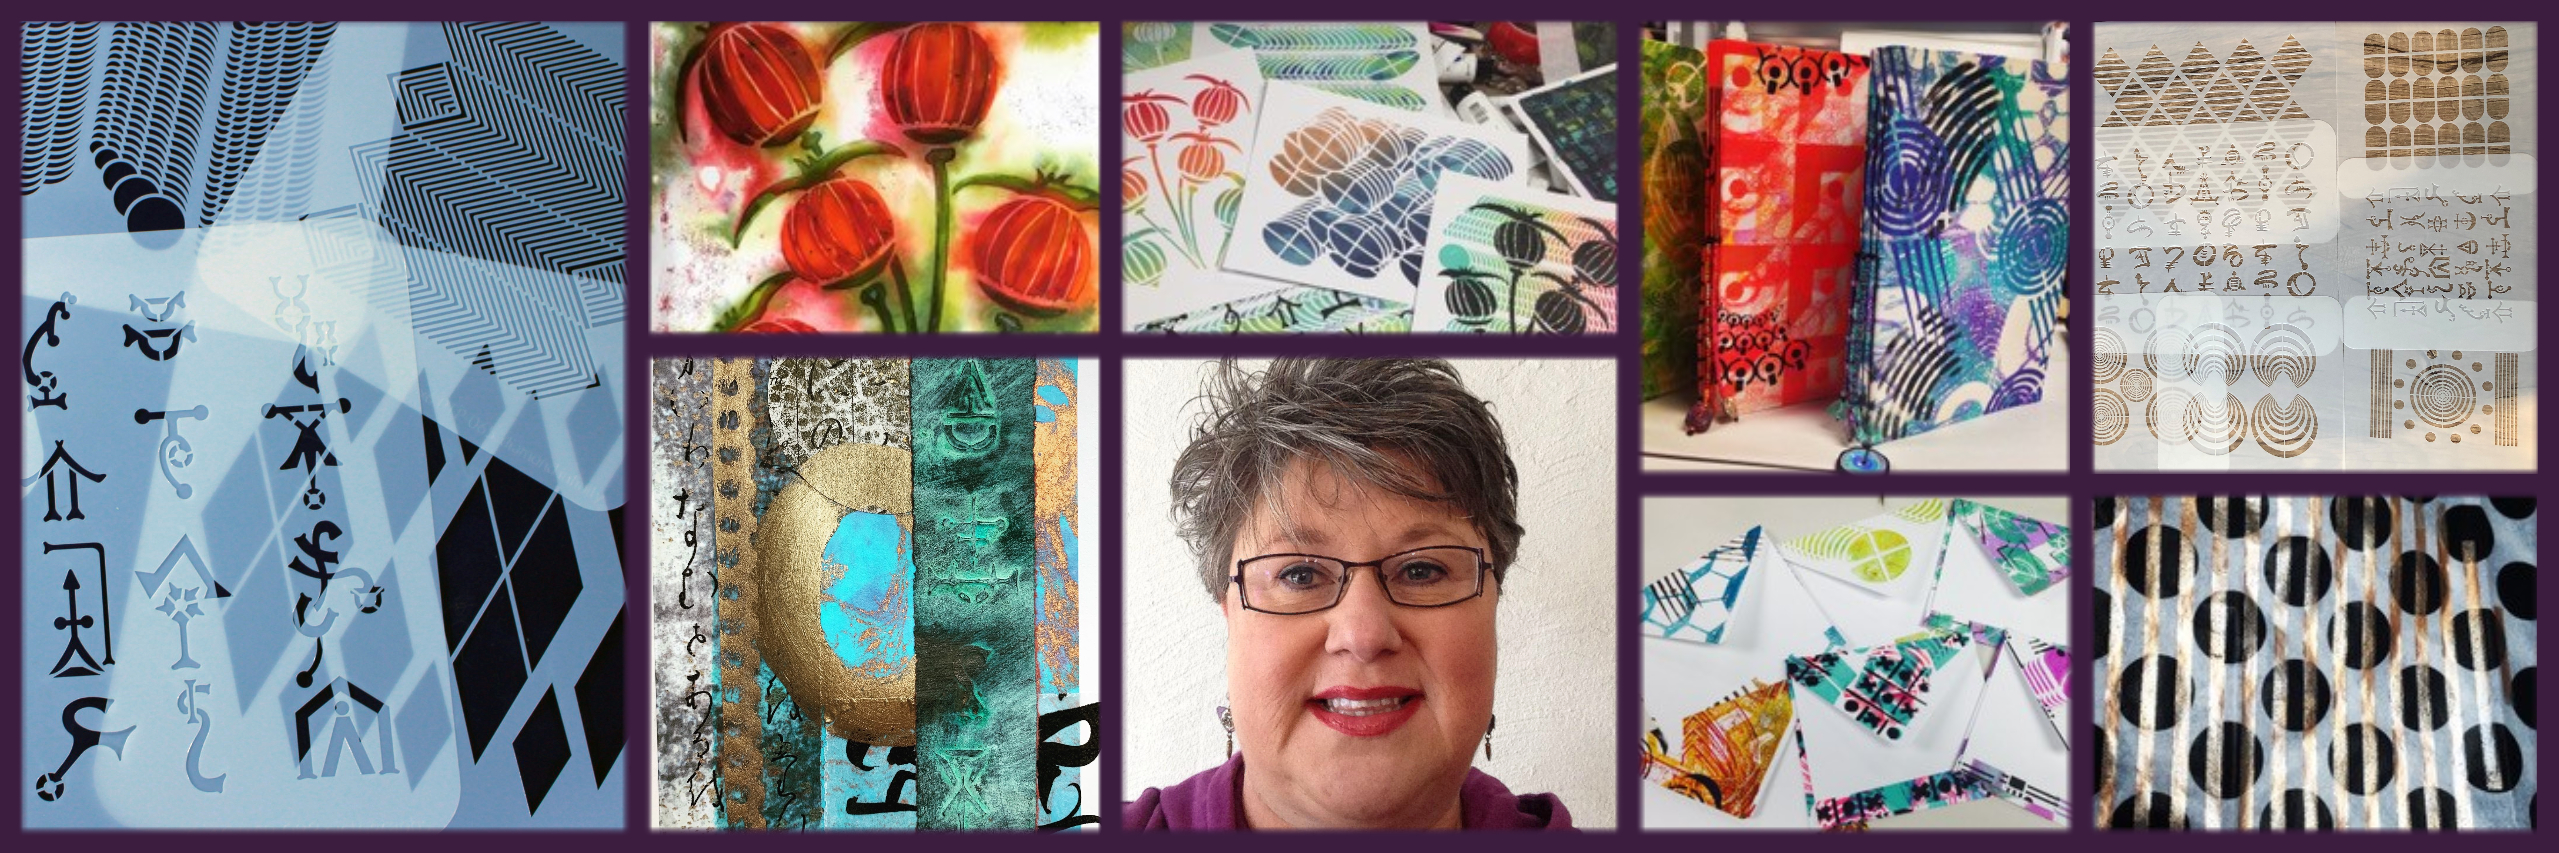 patti tolley parrish stencils